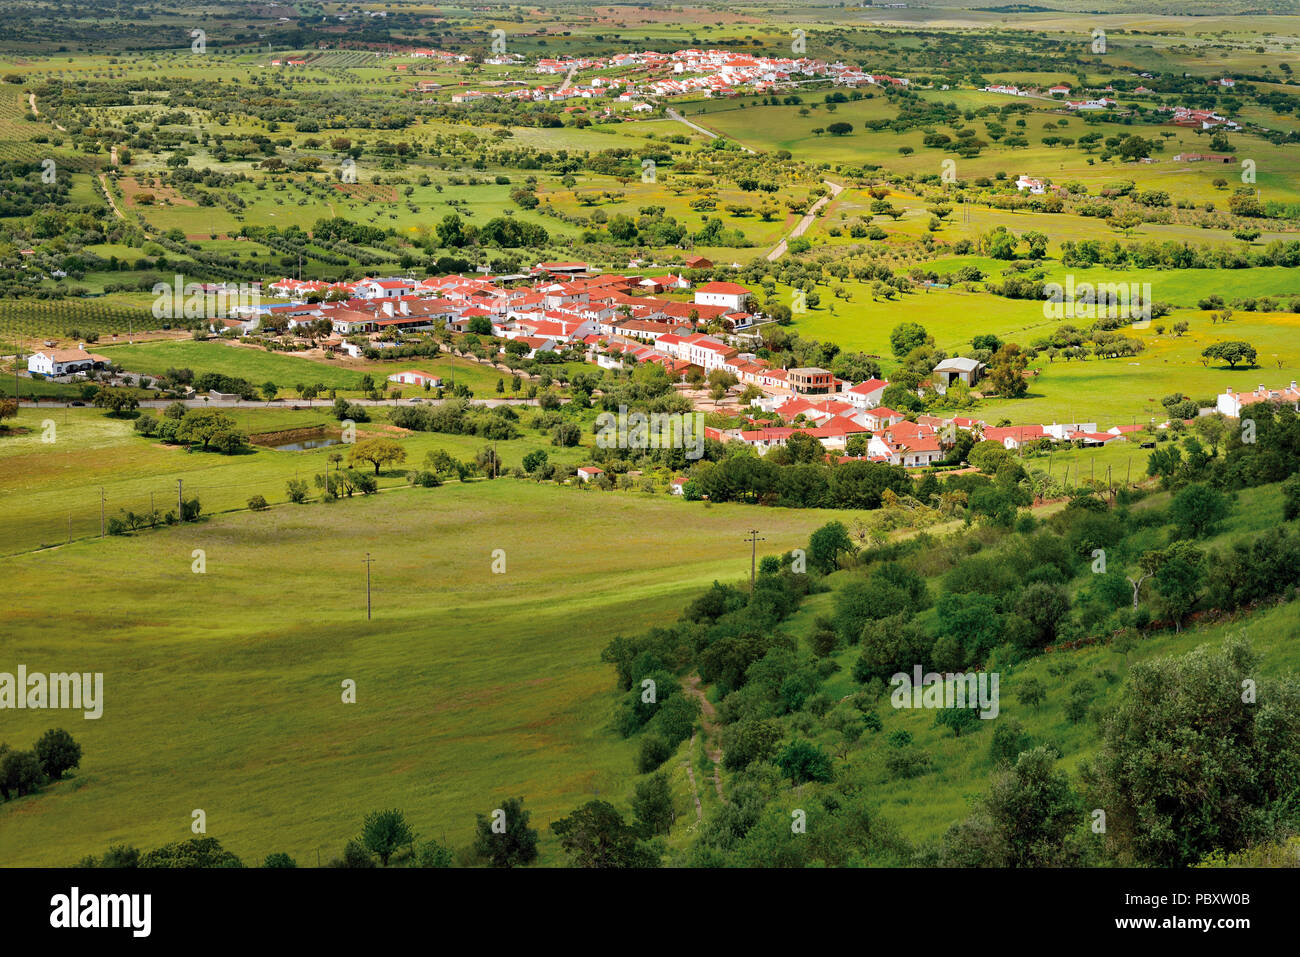 View to two villages in the middle of a wide flat and green landscape - Stock Image